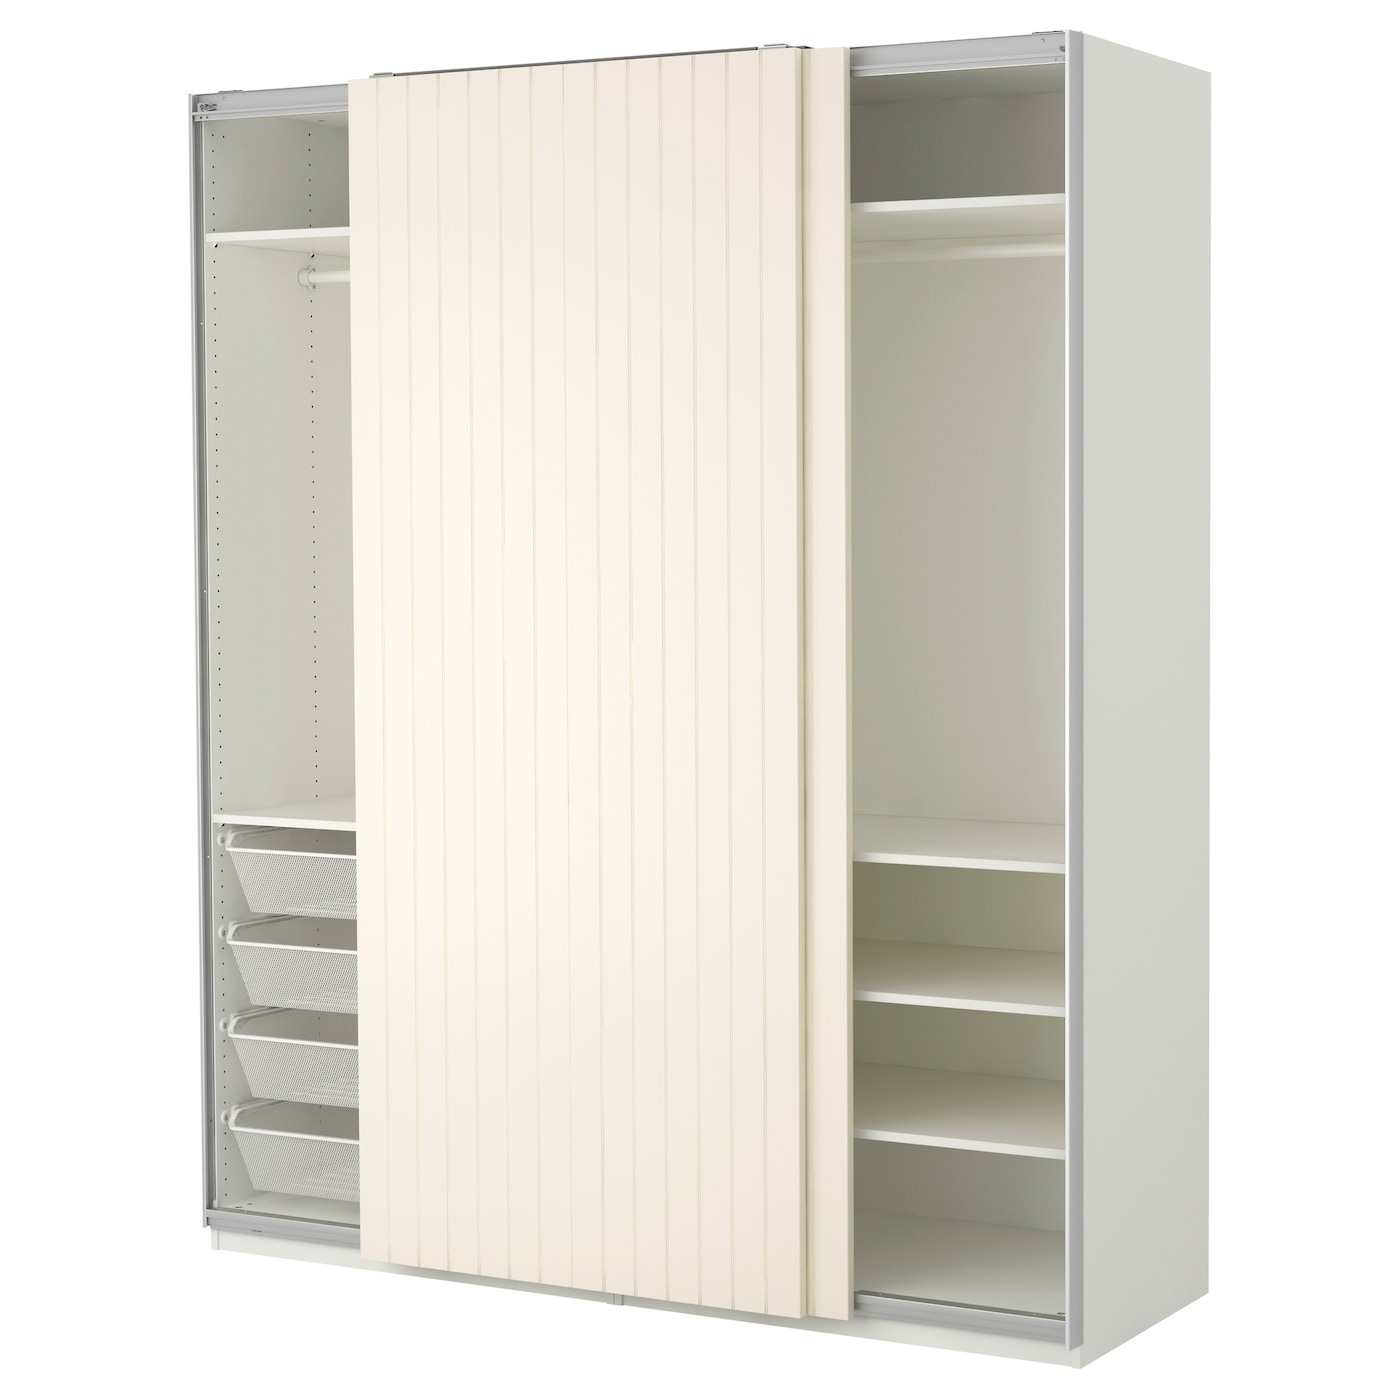 pax armoire penderie blanc bergsfjord blanc 200x66x236 cm ikea. Black Bedroom Furniture Sets. Home Design Ideas